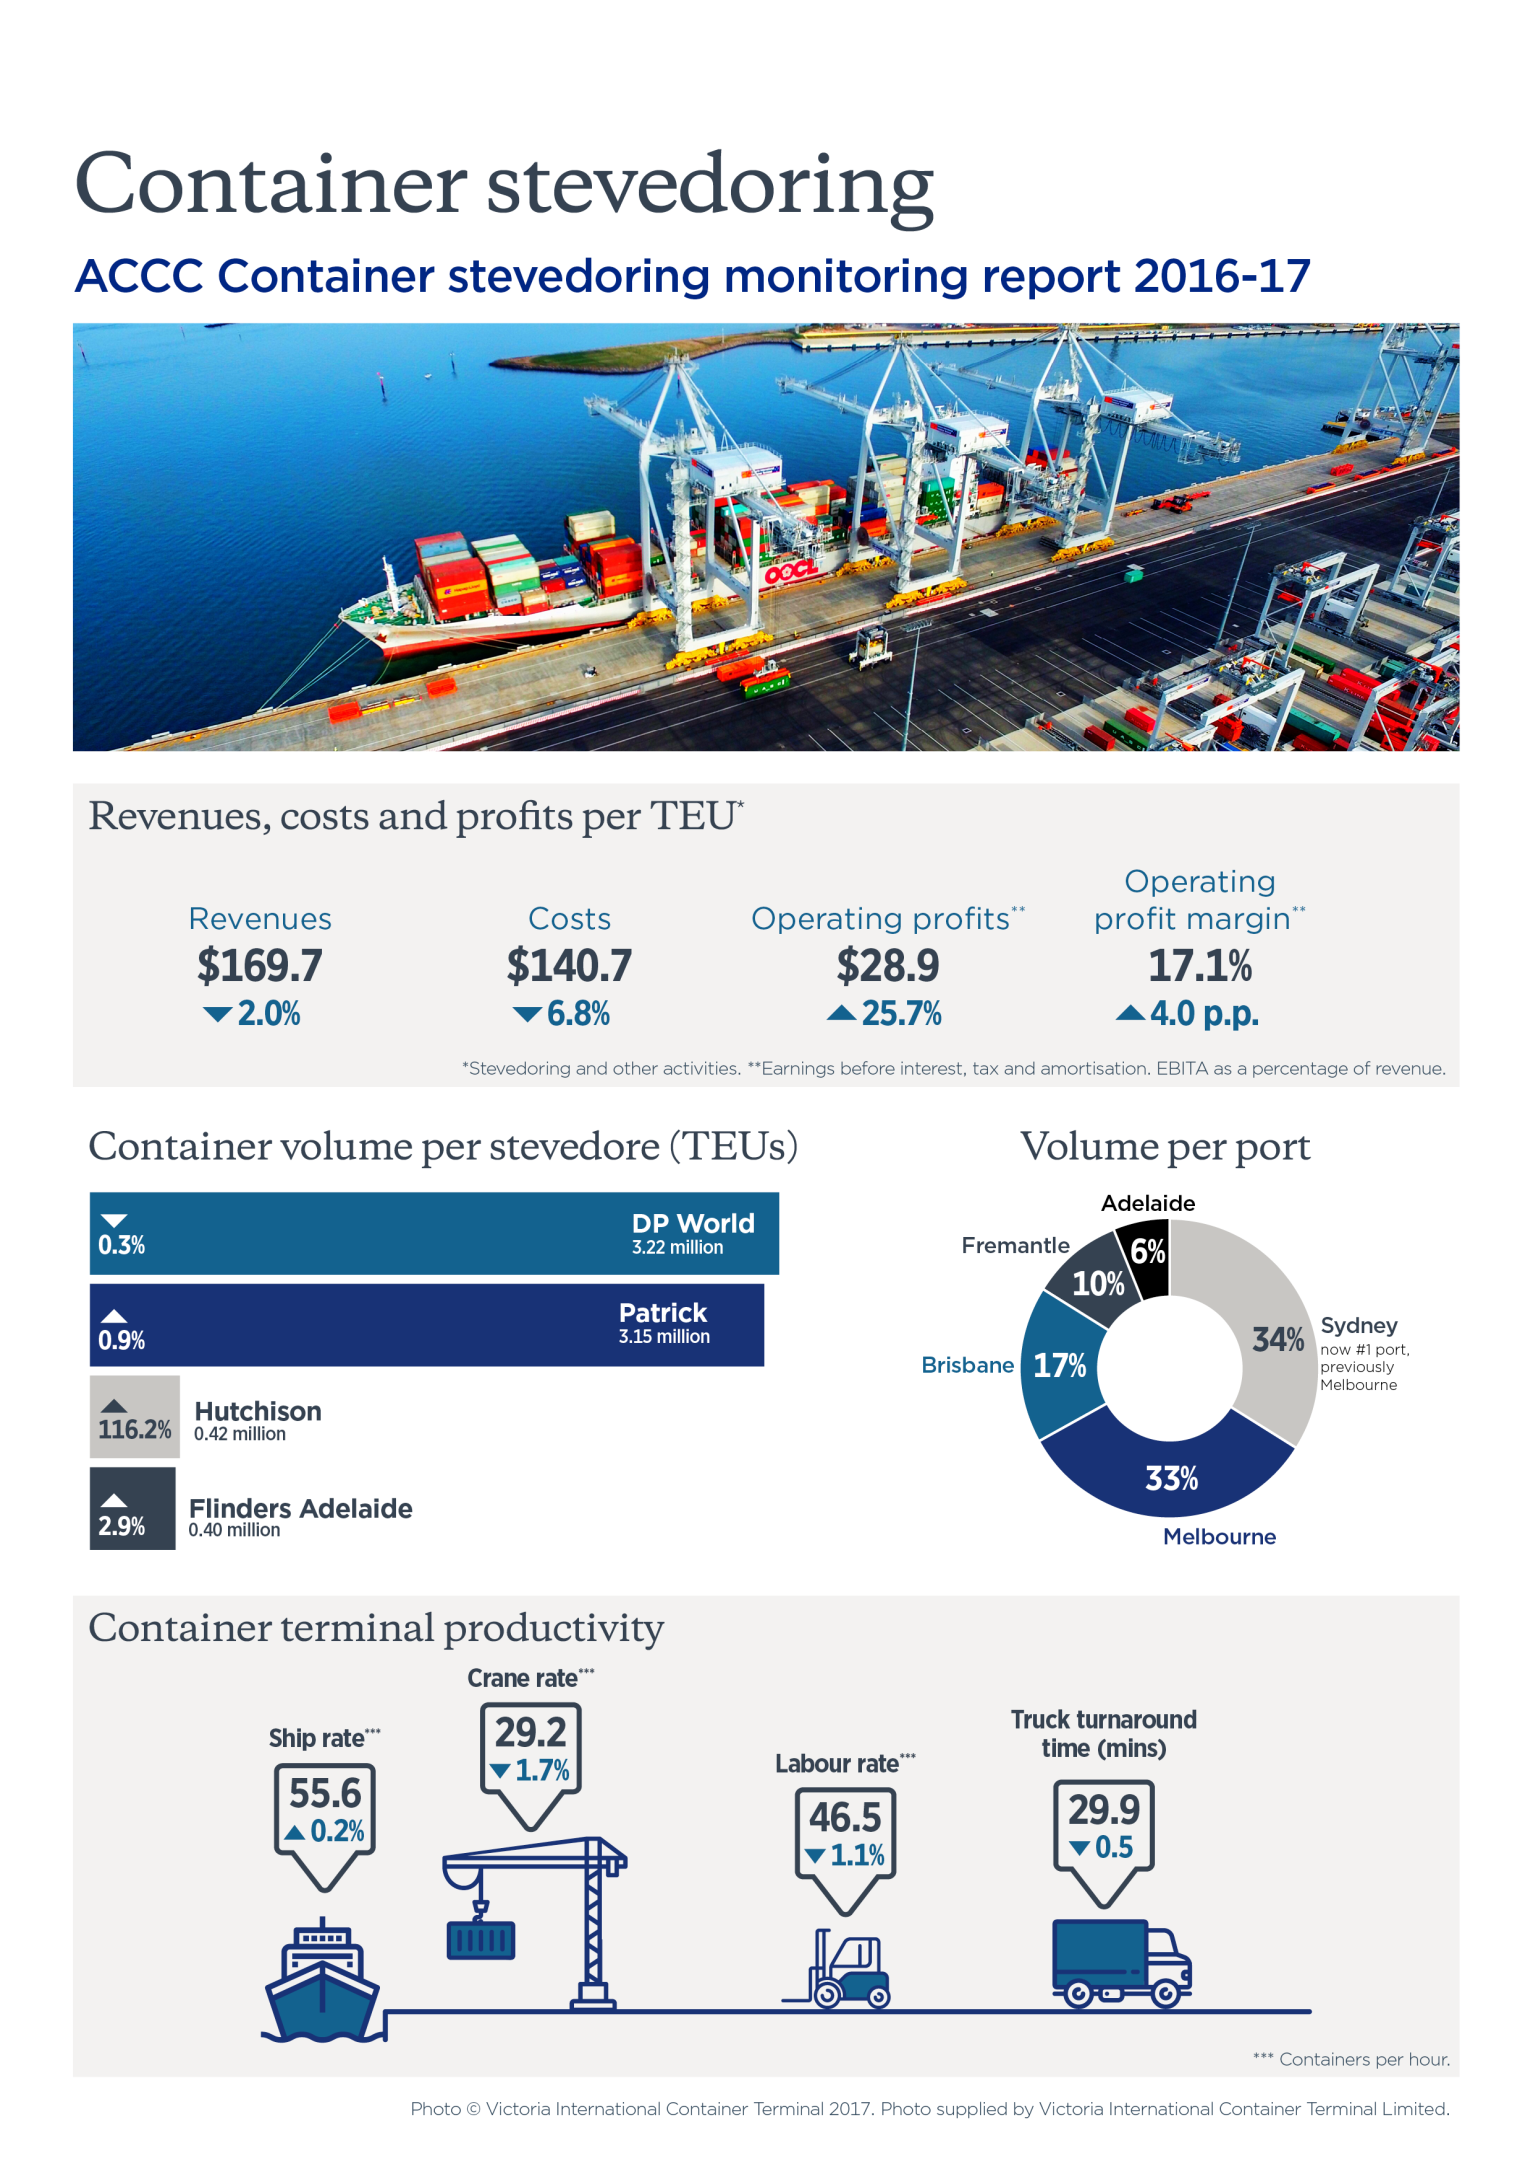 Key statistics from tainer Stevedoring report 2016-17